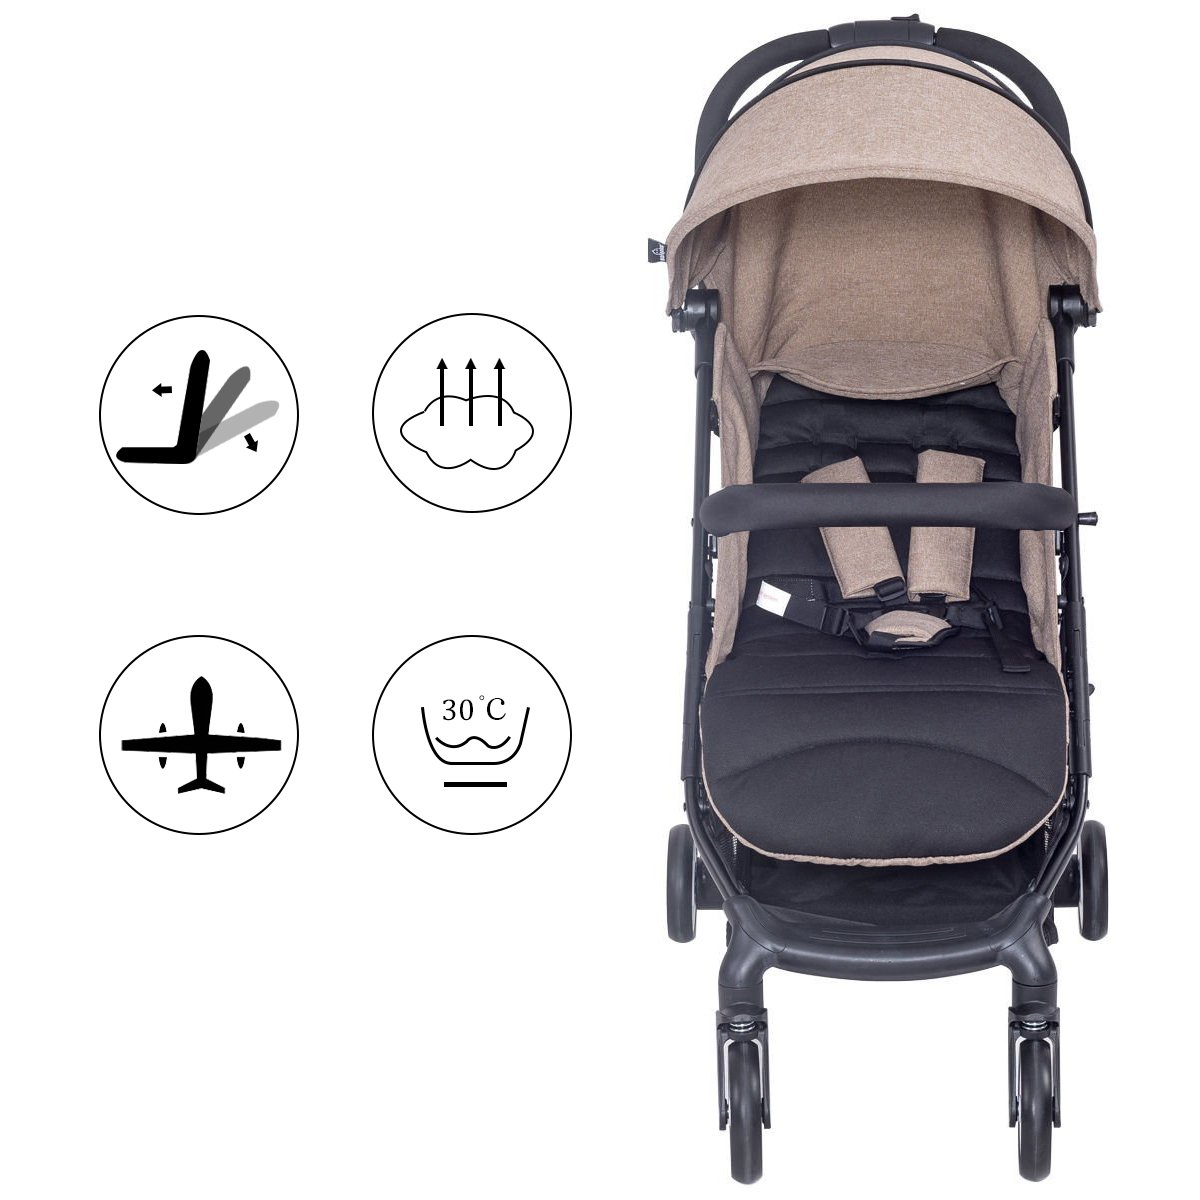 Costzon Lightweight Stroller with 5-Point Safety System and Multi-Positon Reclining Seat Coffee